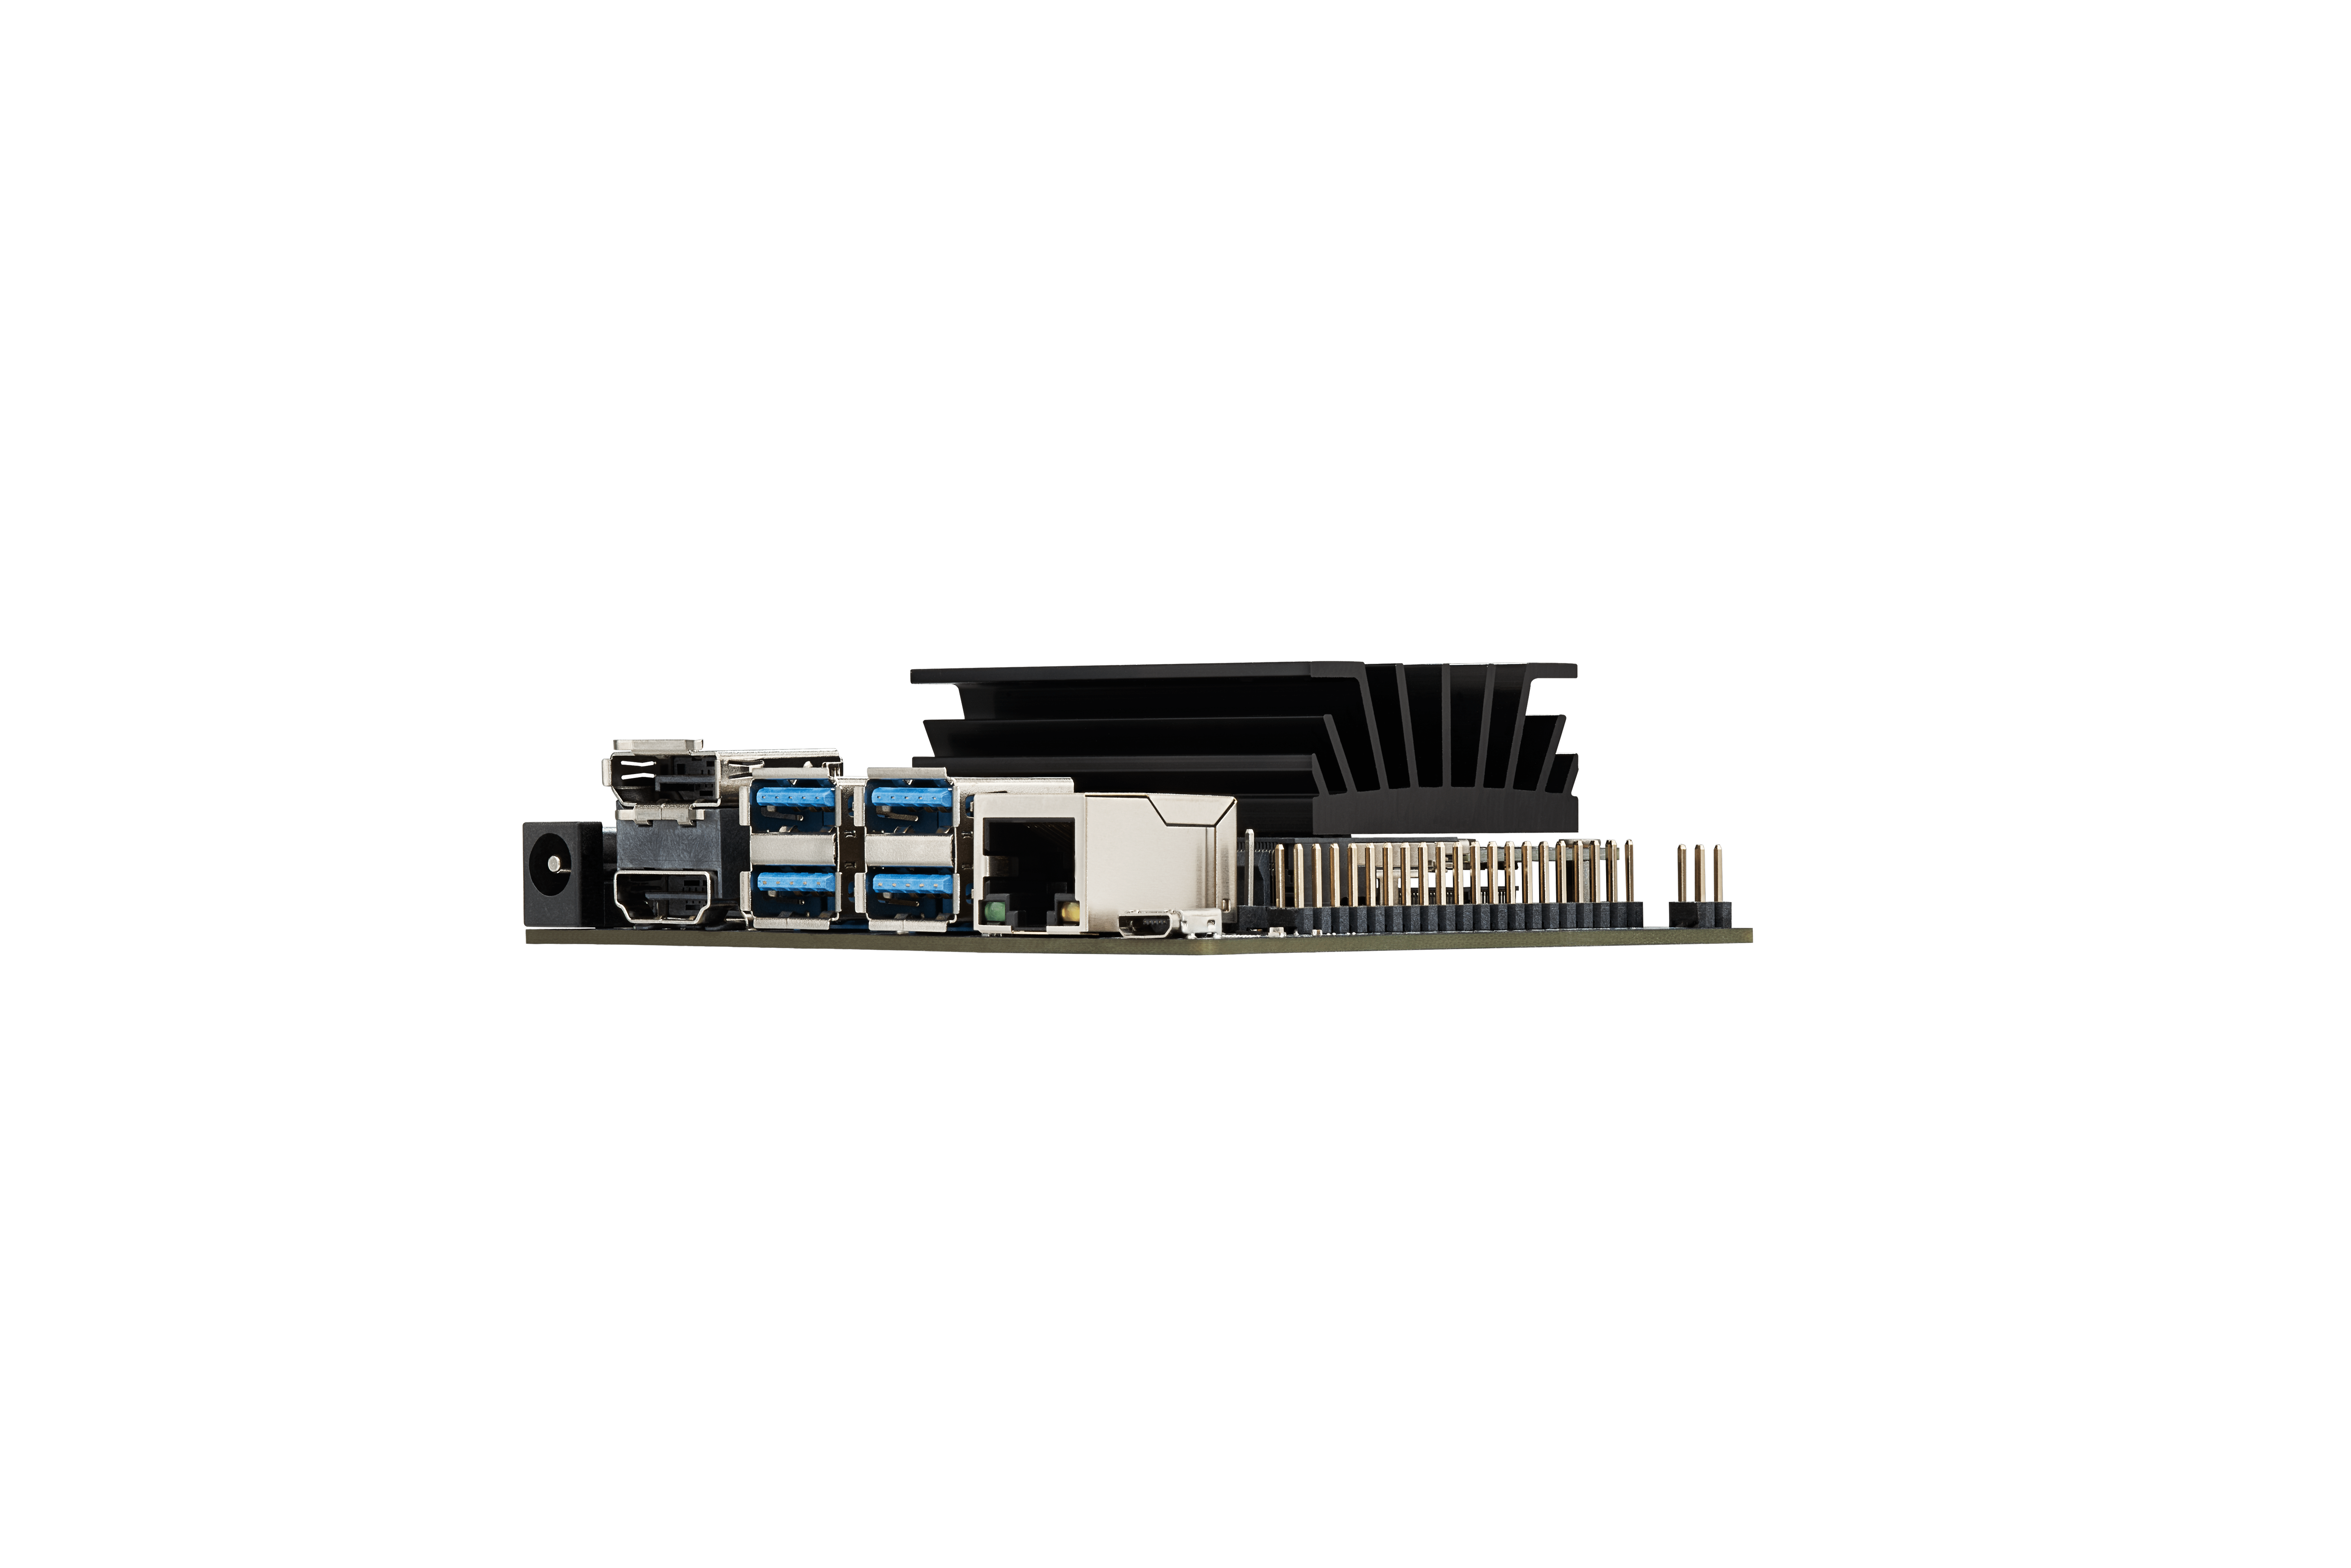 NVIDIA® JETSON NANO™ DEVELOPER KIT